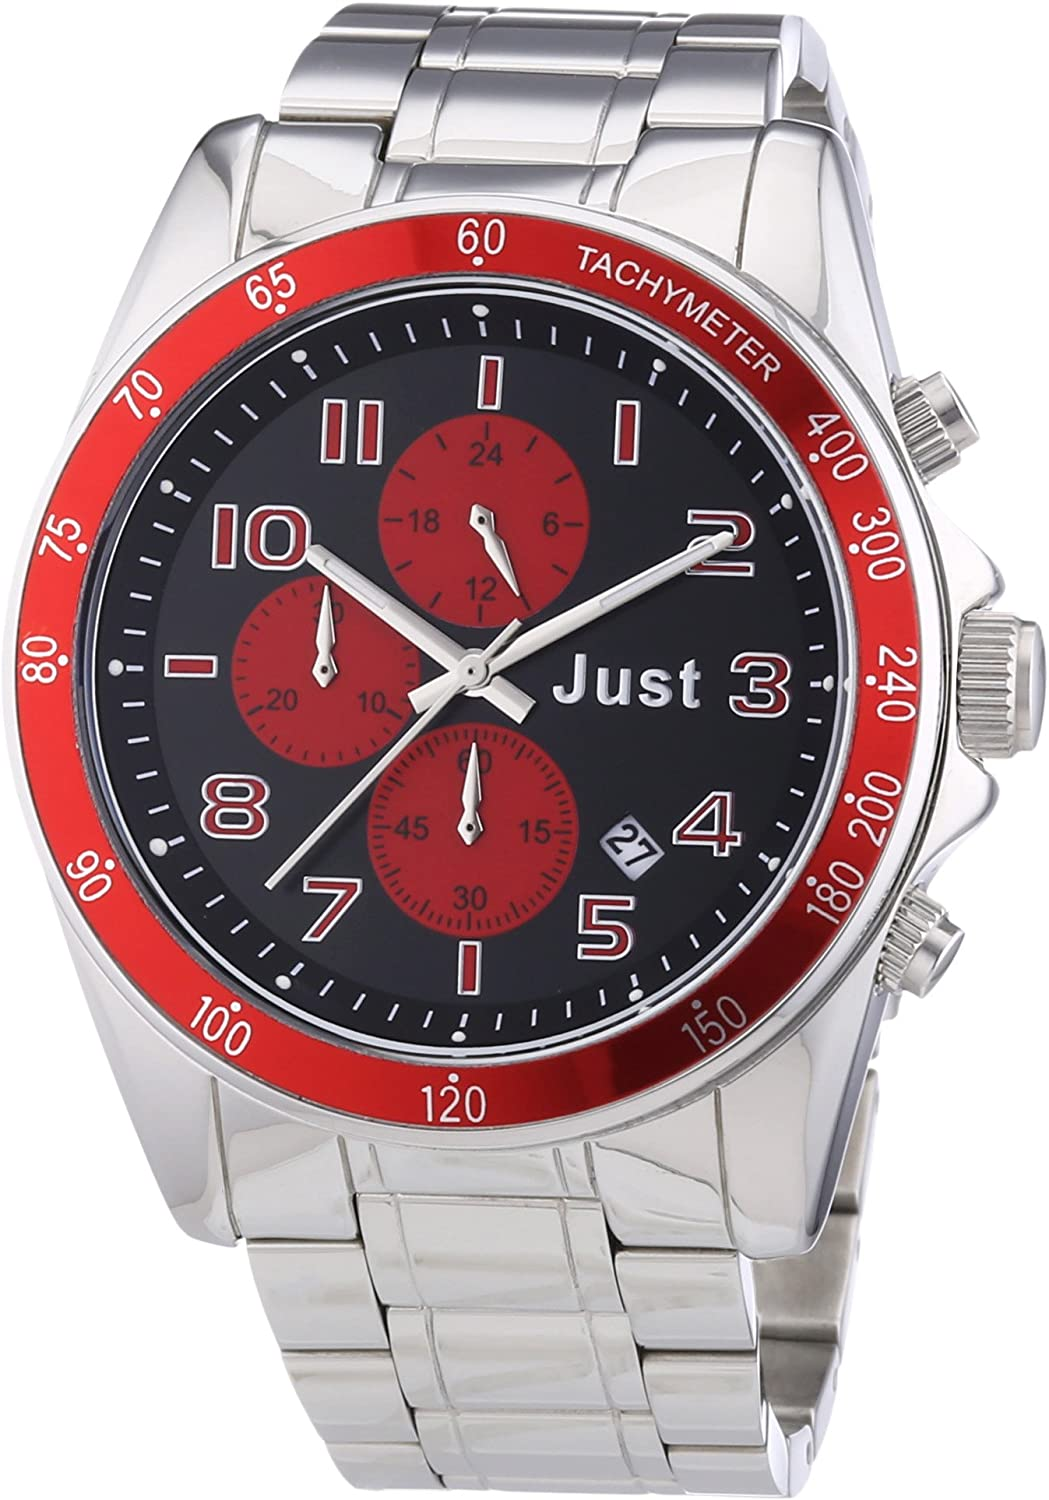 Just Watches 48-S1230-RD - Reloj analógico de cuarzo unisex, correa de acero inoxidable color plateado